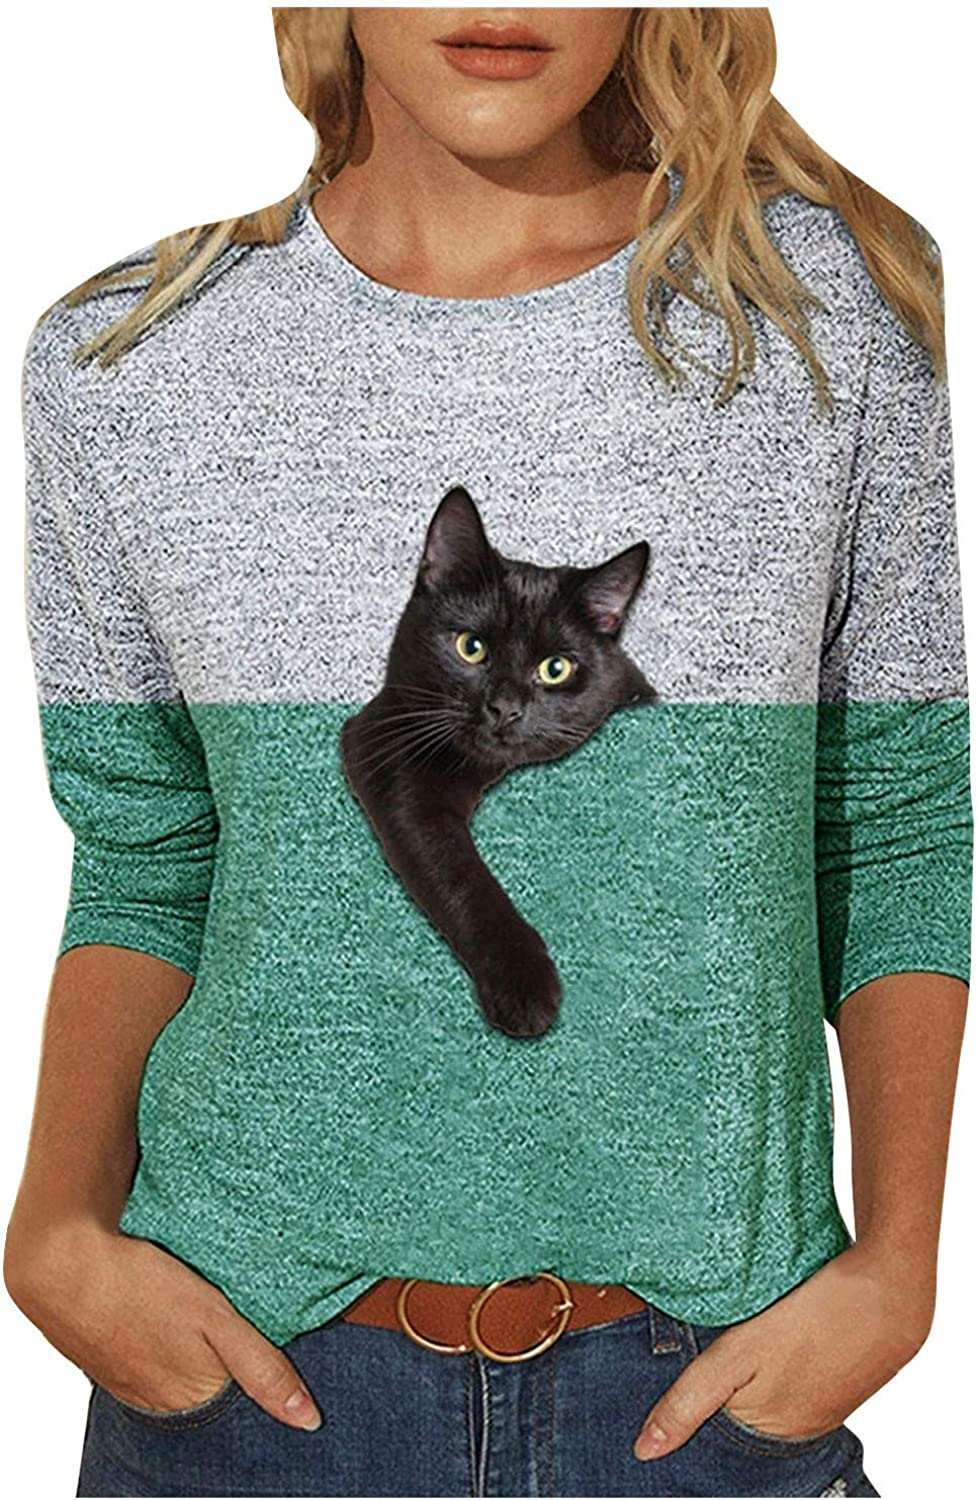 Mllkcao Women Tops for Ladies Casual Cat Print Sweatshirt Color Matching Long Sleeve Blouse Pullover